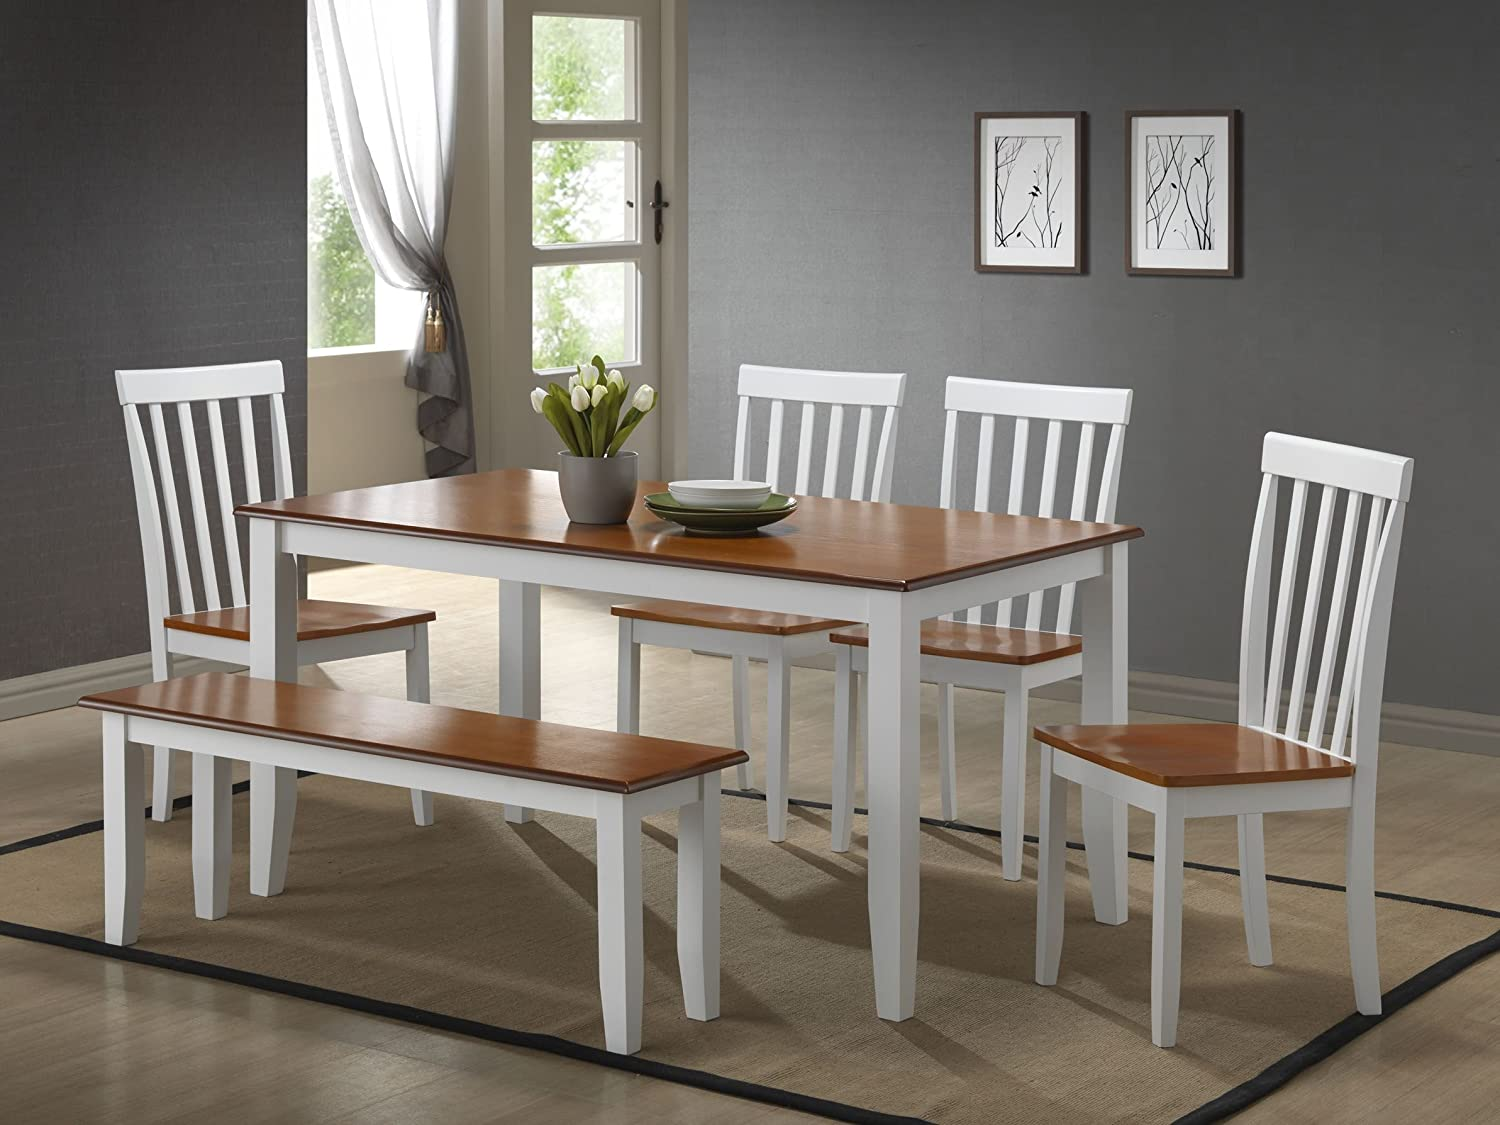 amazoncom boraam 22034 bloomington 6 piece dining room set whitehoney oak table chair sets - Dining Room Table With Chairs And Bench